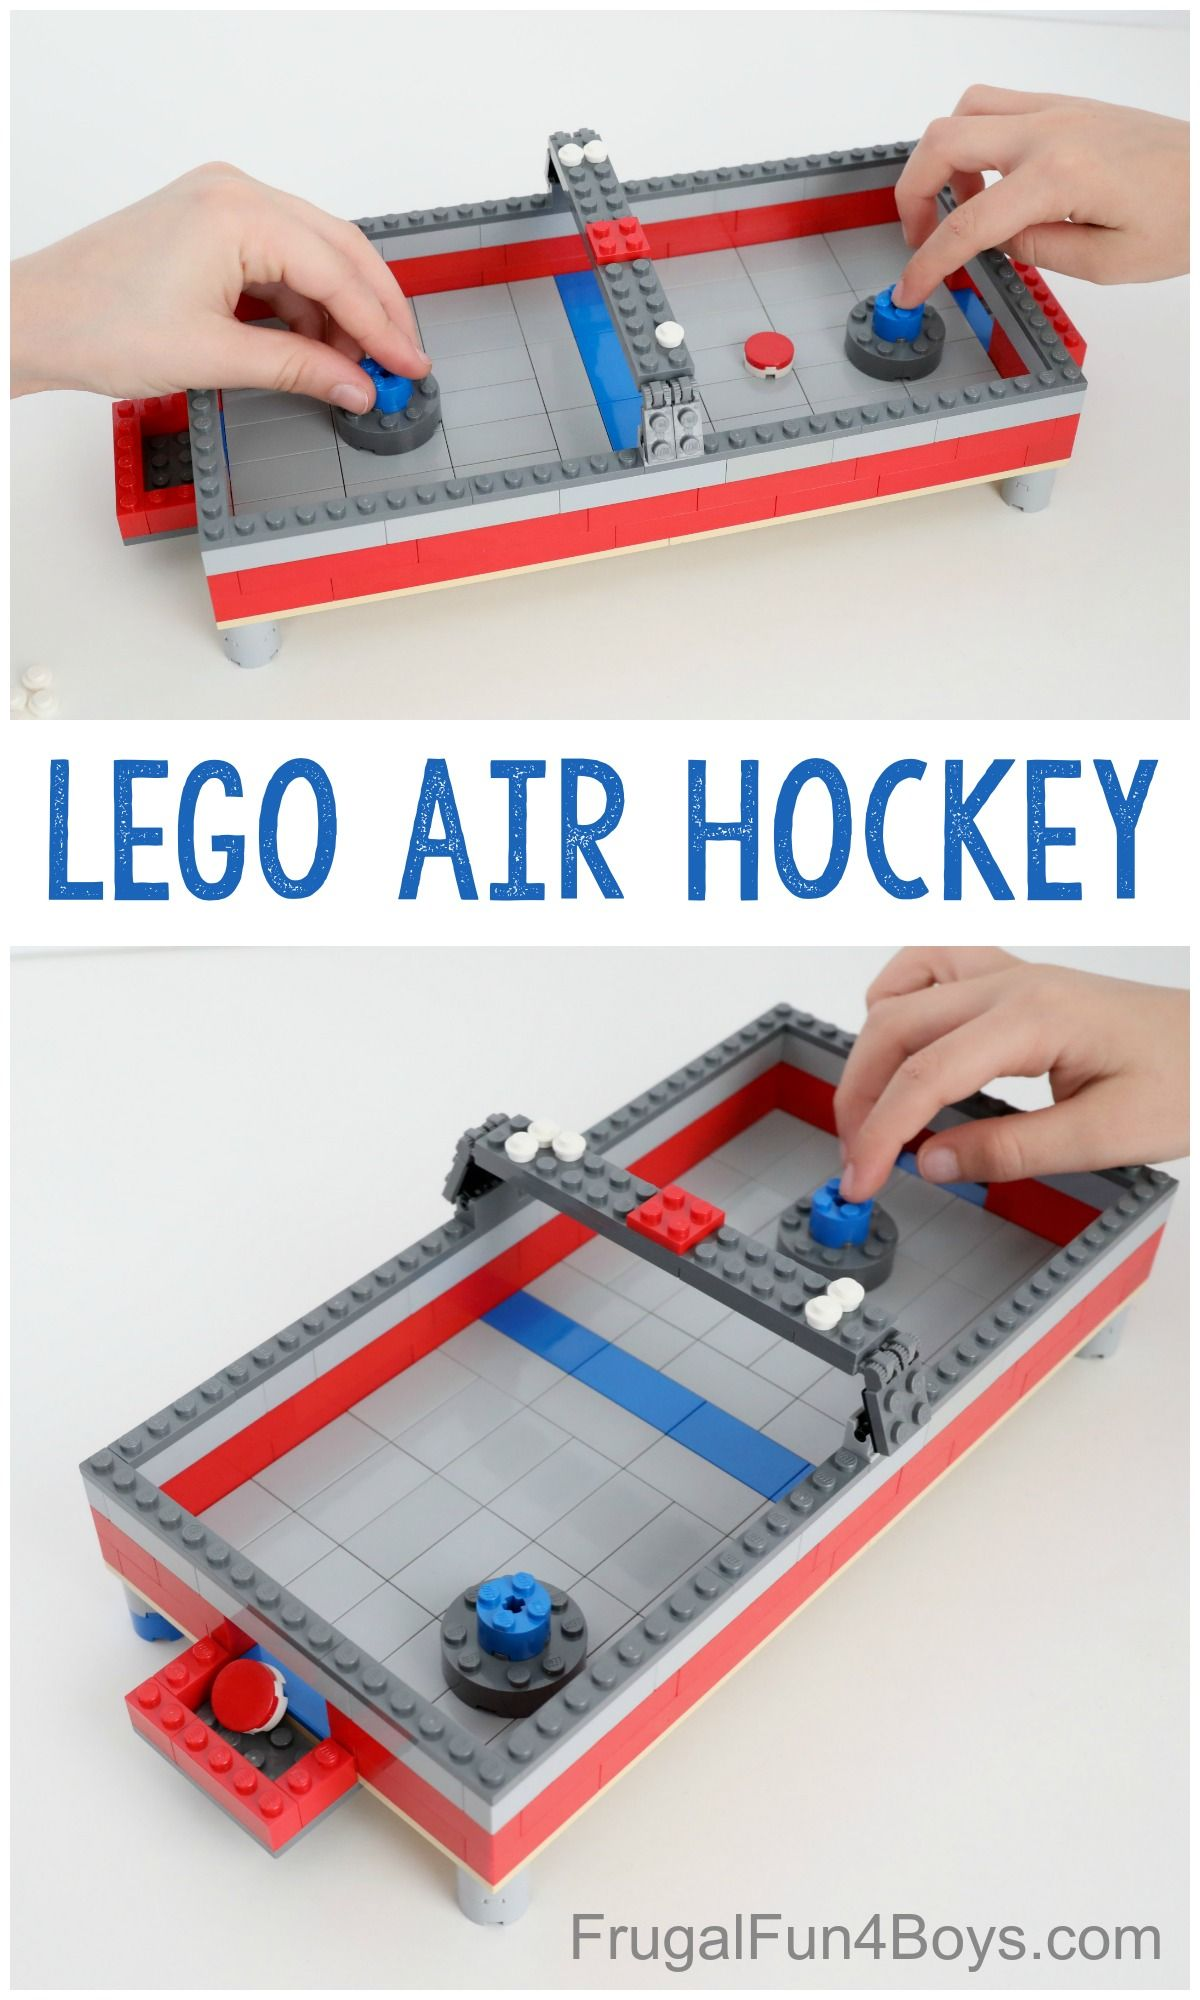 Build A Lego Air Hockey Table Frugal Fun For Boys And Girls Air Hockey Lego Challenge Lego For Kids